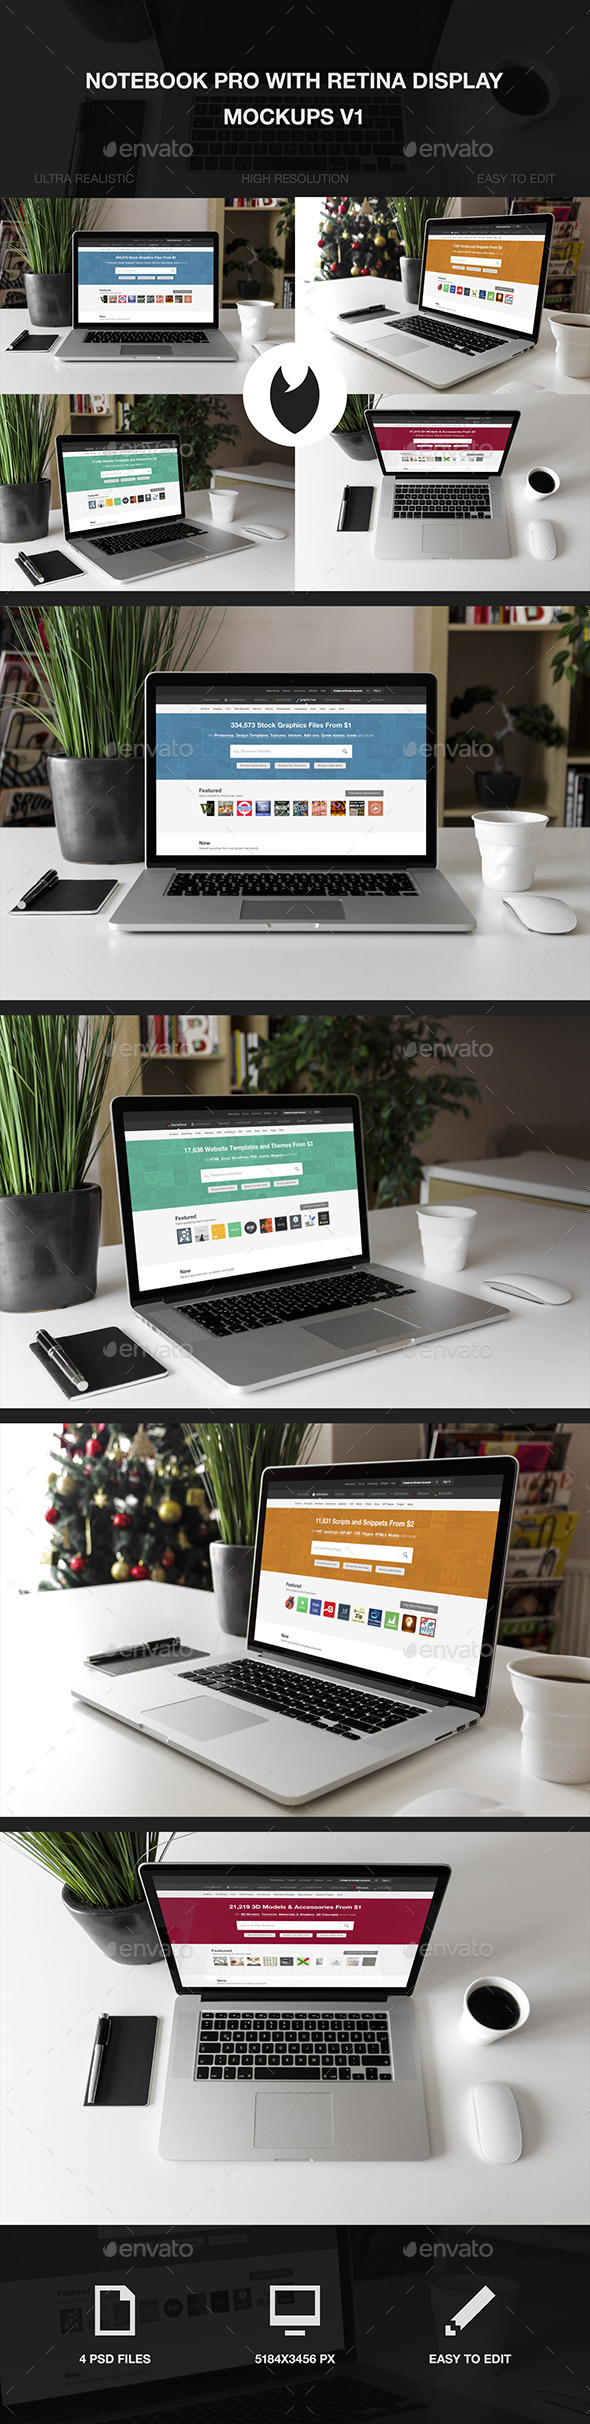 GraphicRiver Notebook Pro with Retina Display Mockups V1 10268849